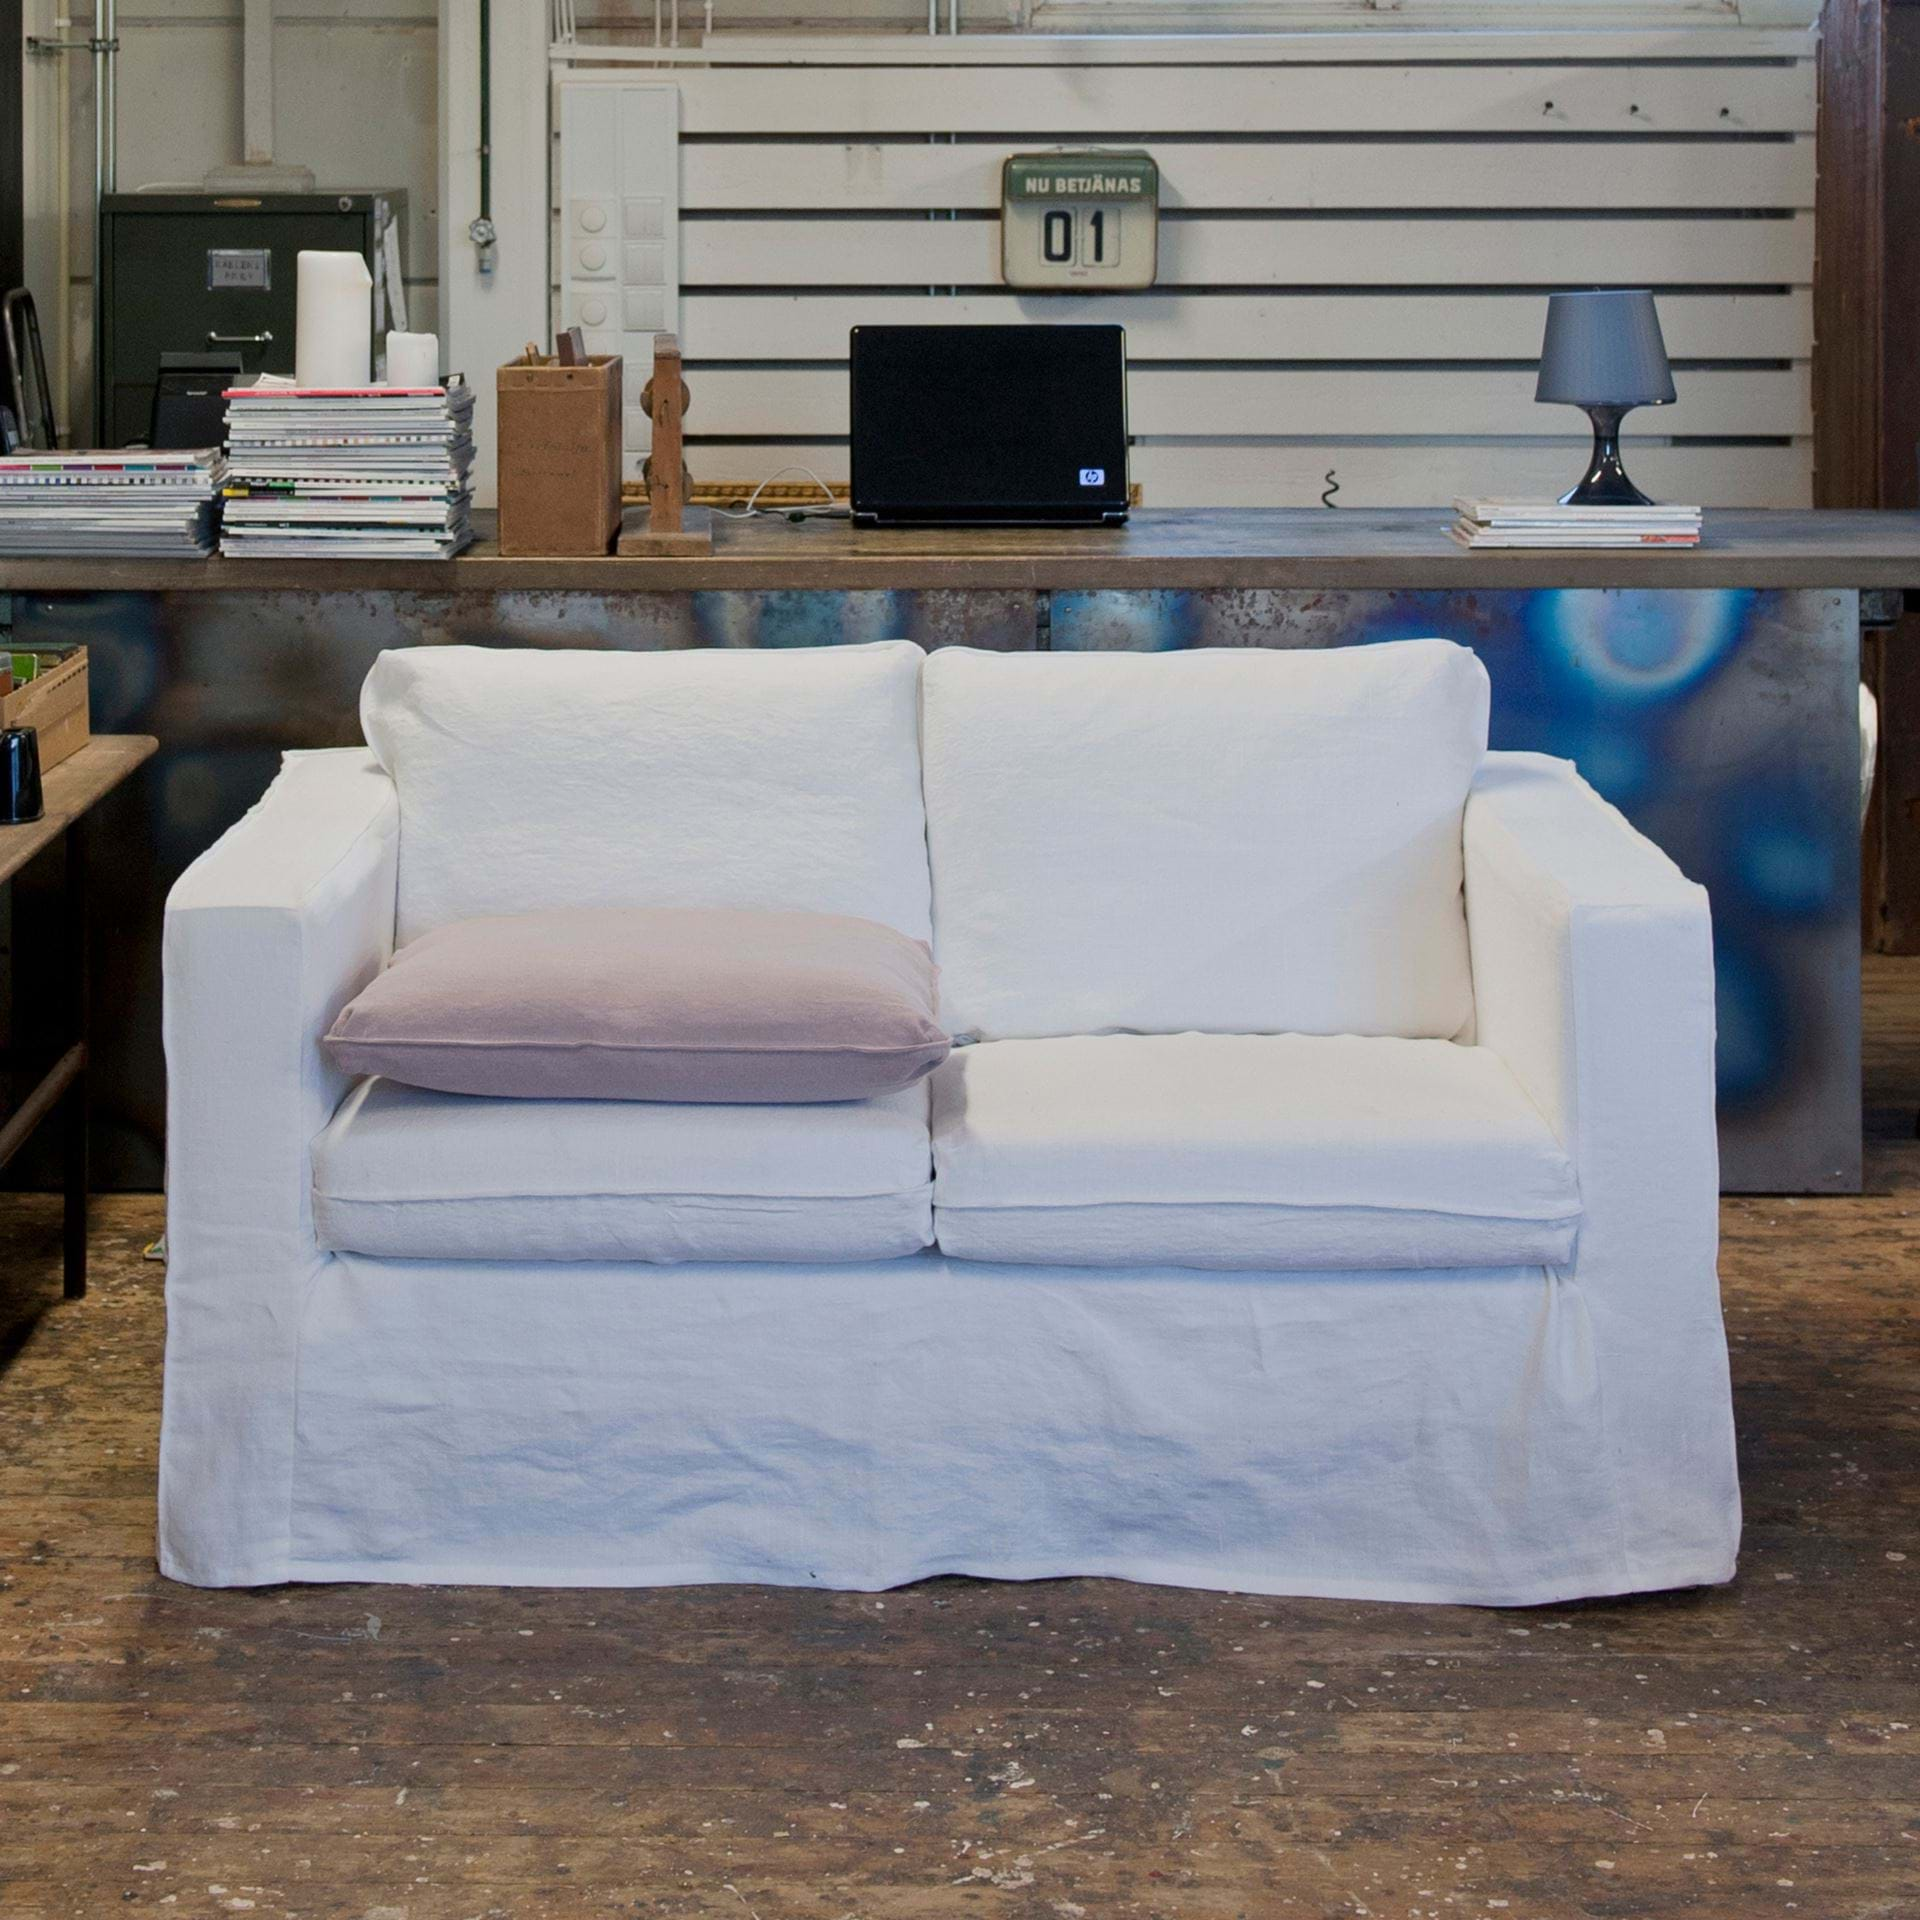 Fine Ikea Karlanda 2 Seater Sofa Cover Loose Fit Bemz Squirreltailoven Fun Painted Chair Ideas Images Squirreltailovenorg